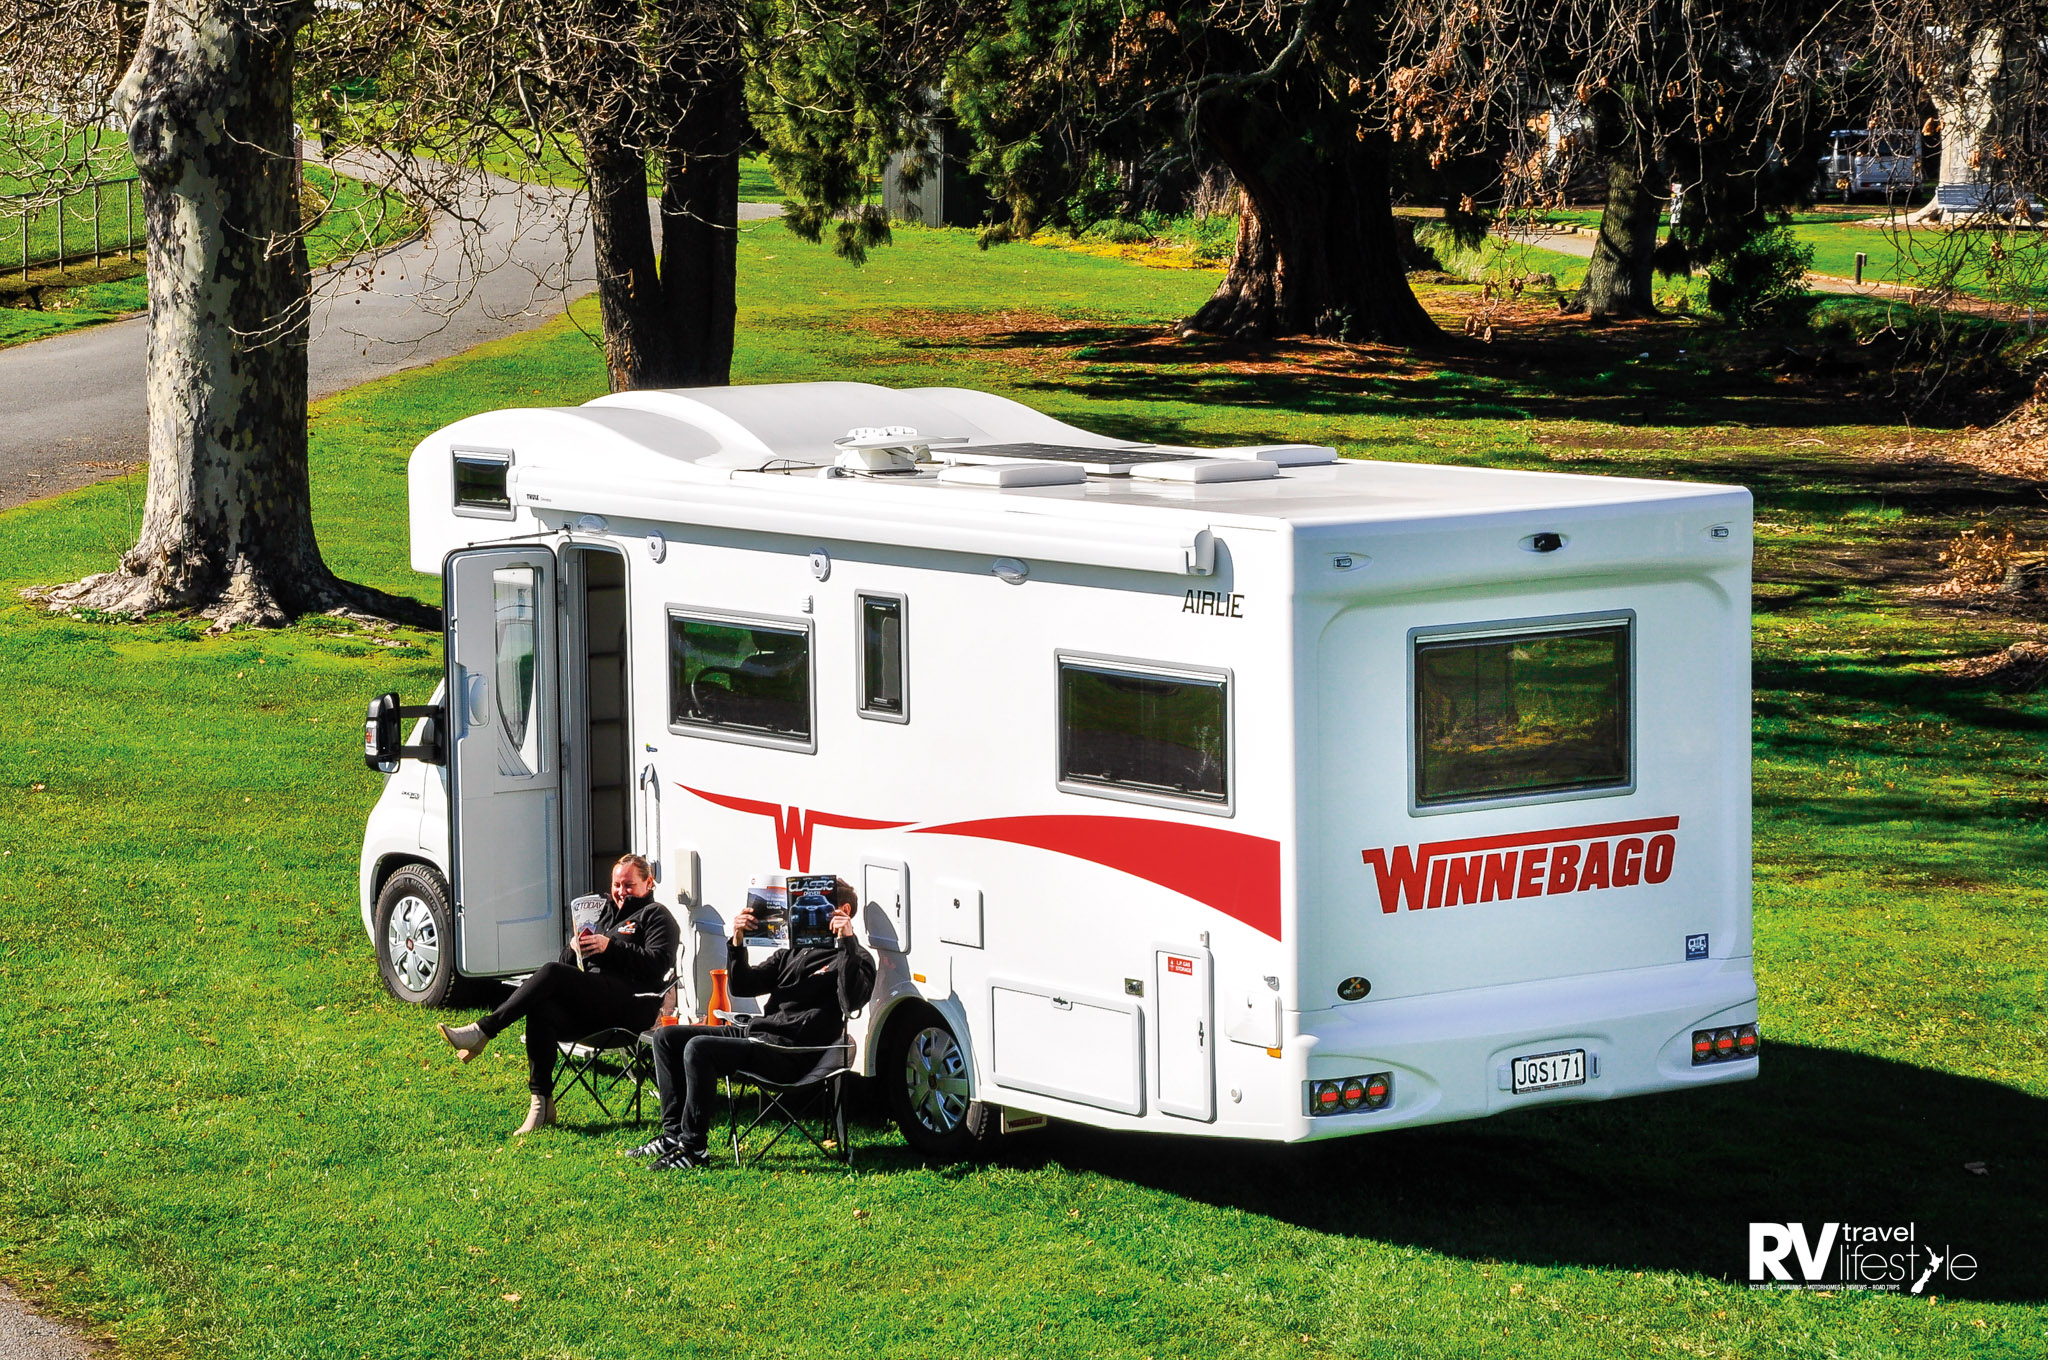 World Famous And In New Zealand Rv Travel Lifestyle